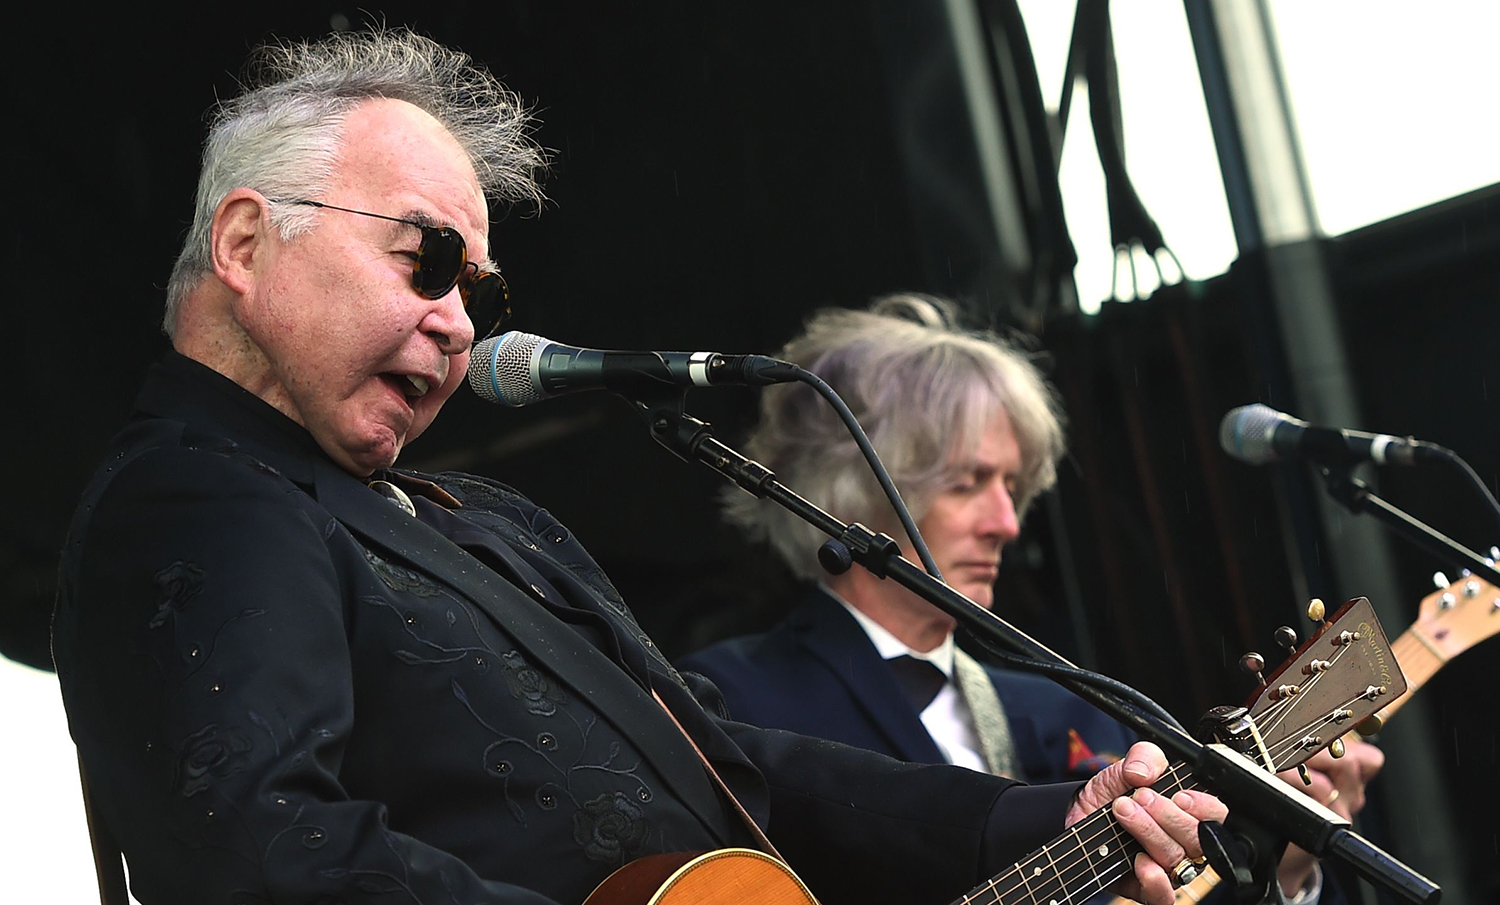 John Prine 'Taking a Break From Touring' to Recover From Hip Injury